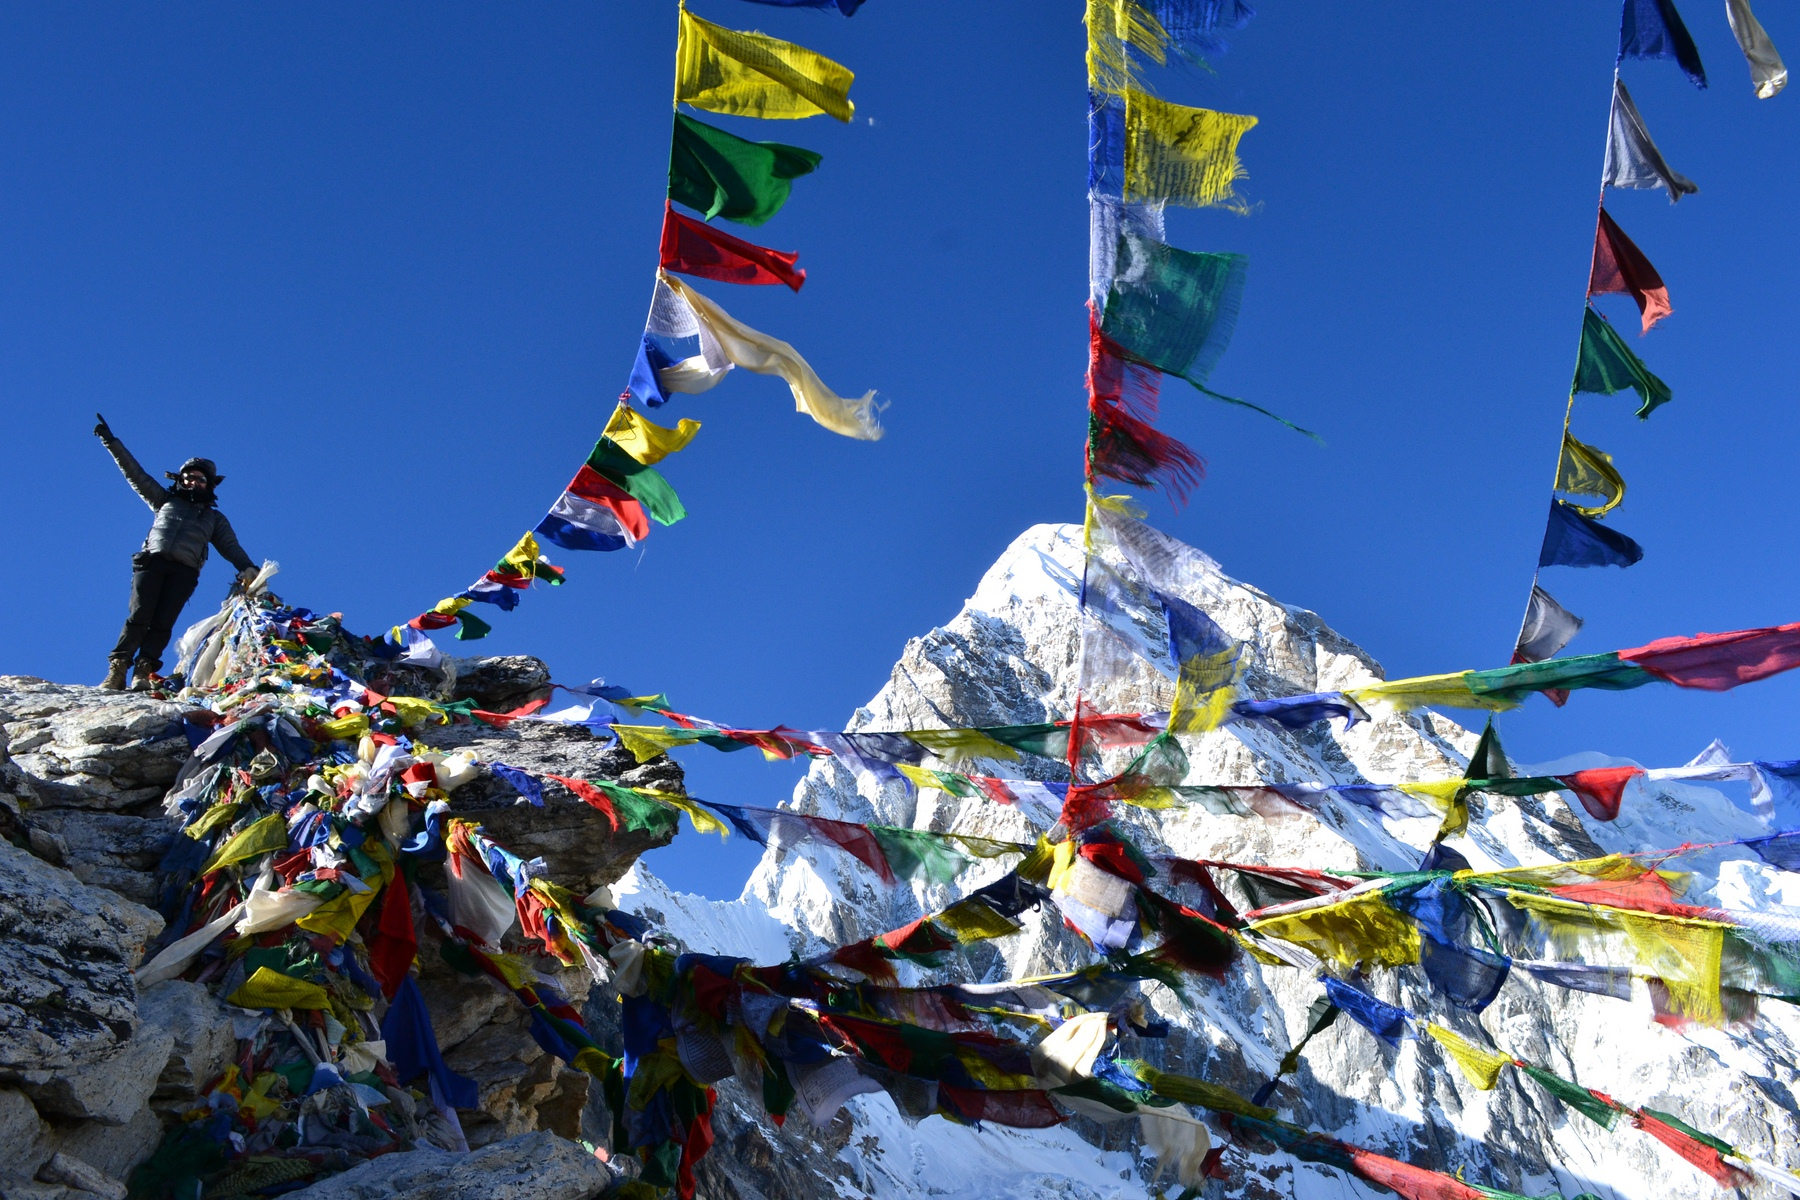 everest-trek-gallerie-2(8)